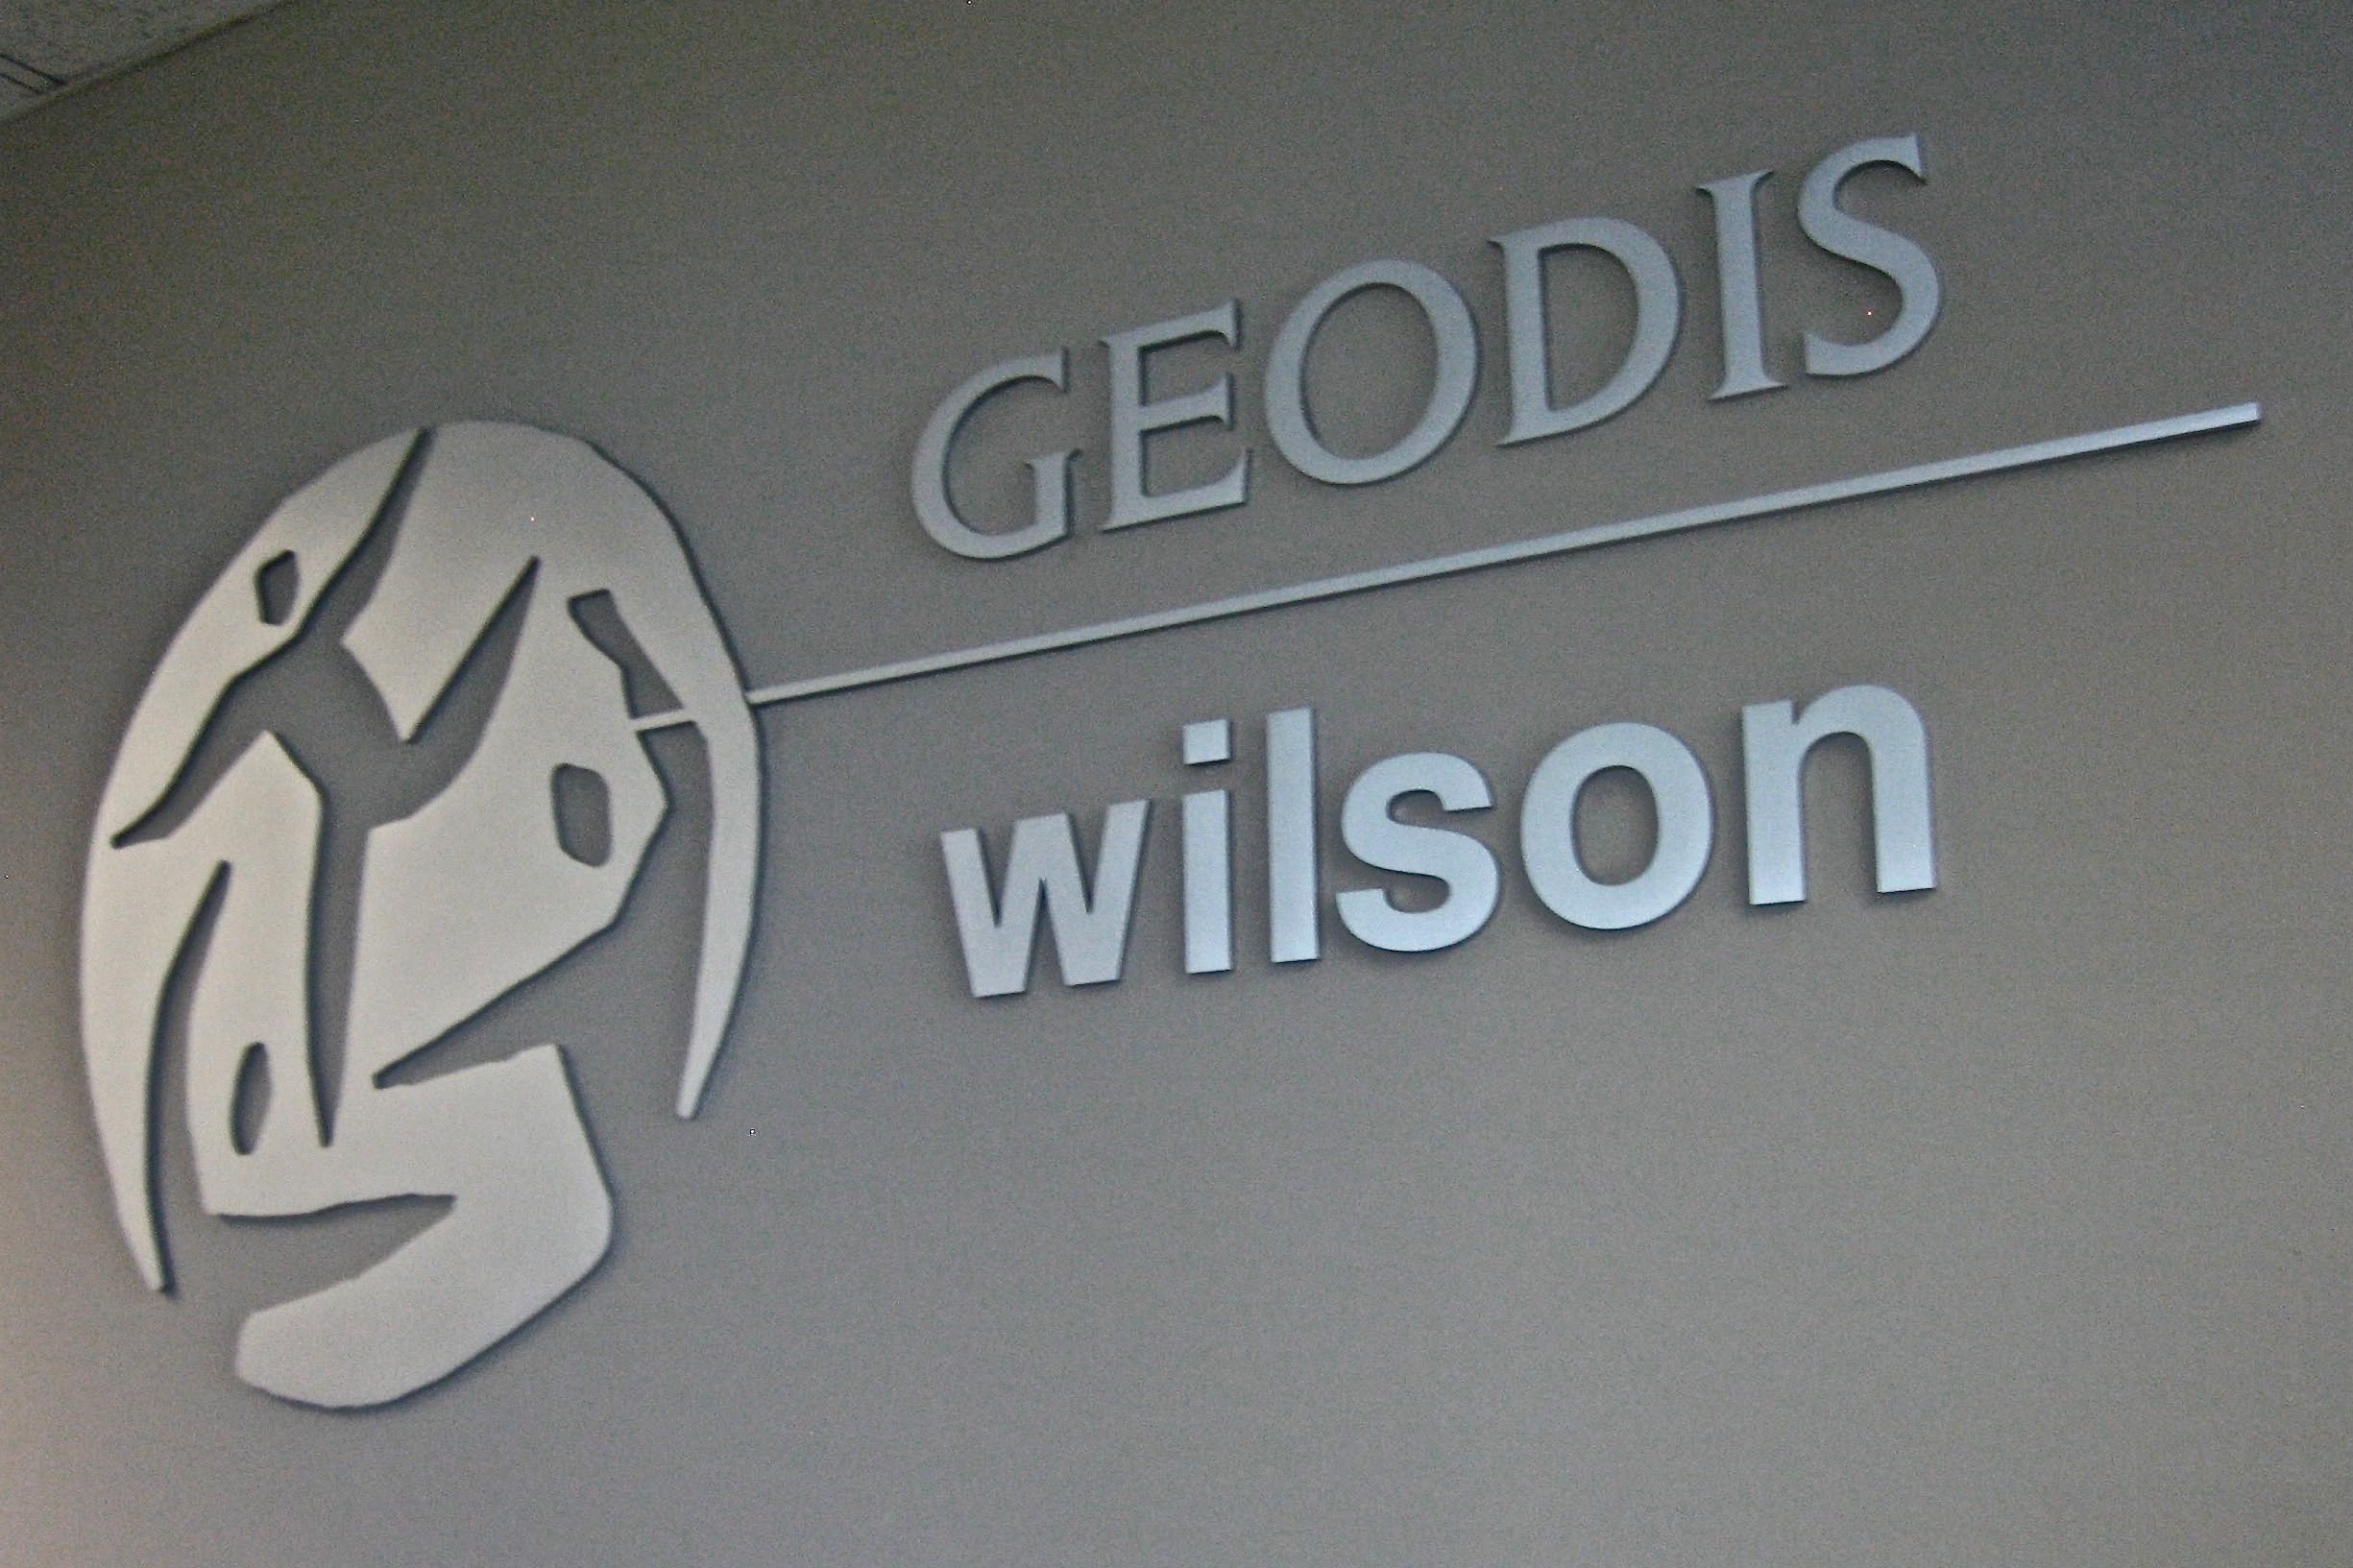 Geodis Wilson reception dimensional logo